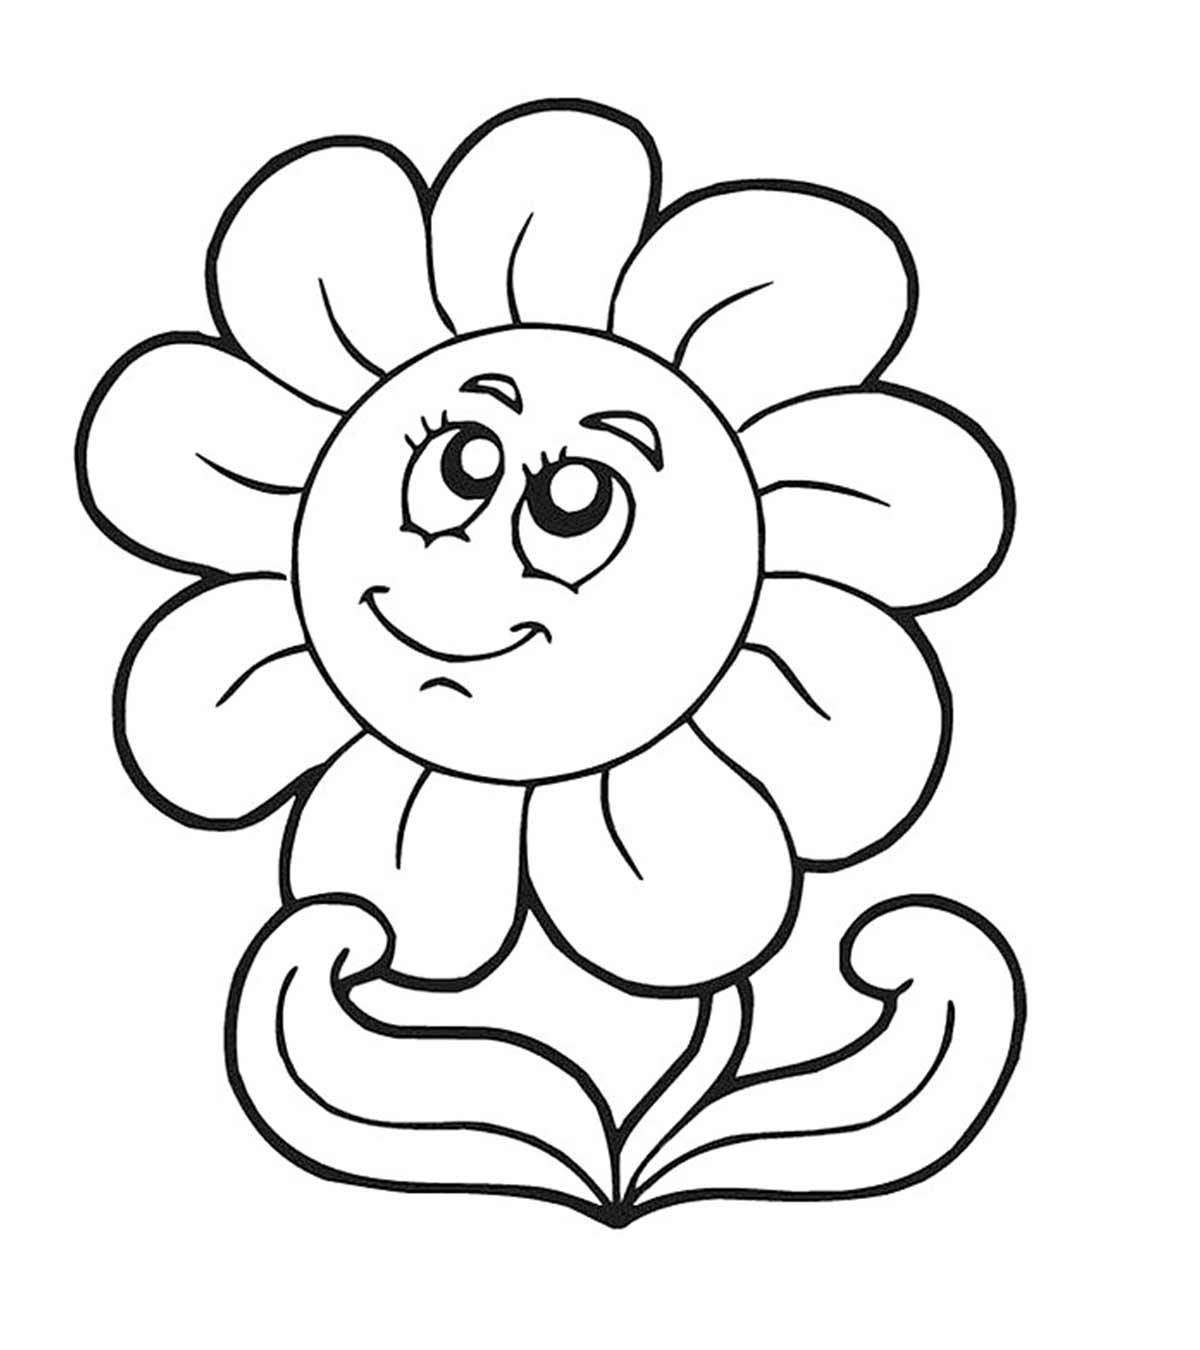 Sunflower Colouring Pages